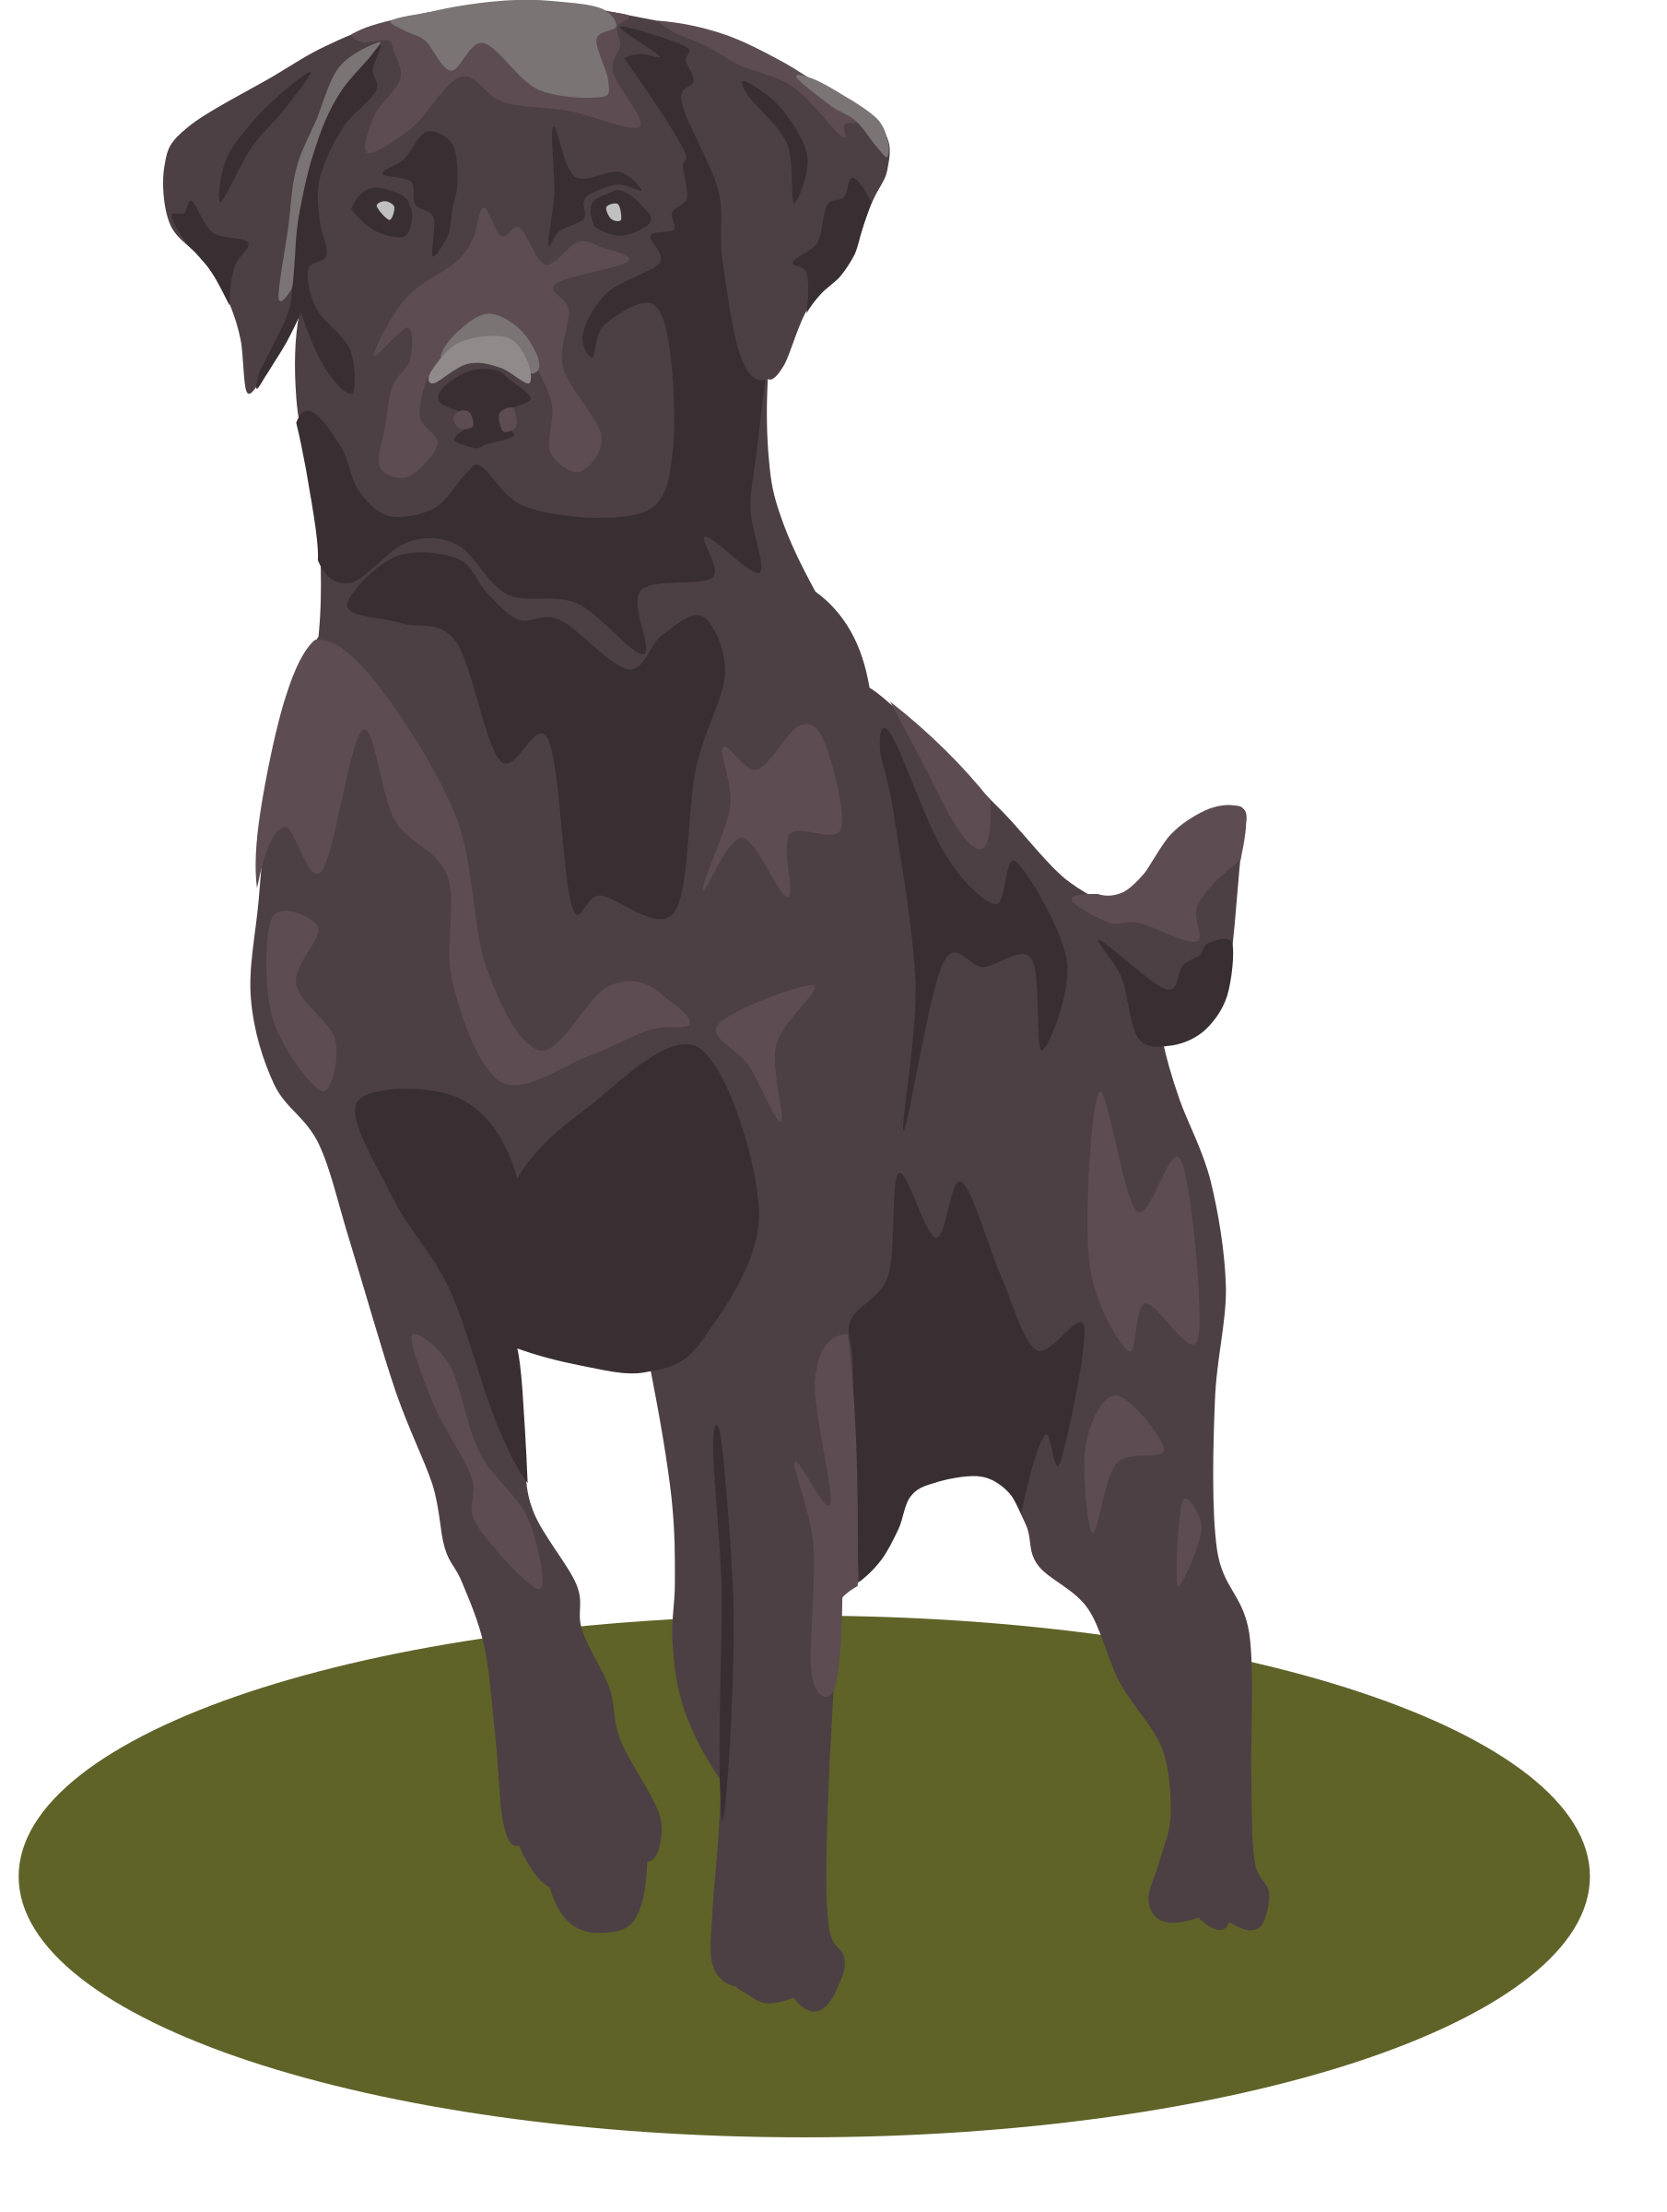 Clipart of black lab dog png free stock Clipart - Black Lab png free stock